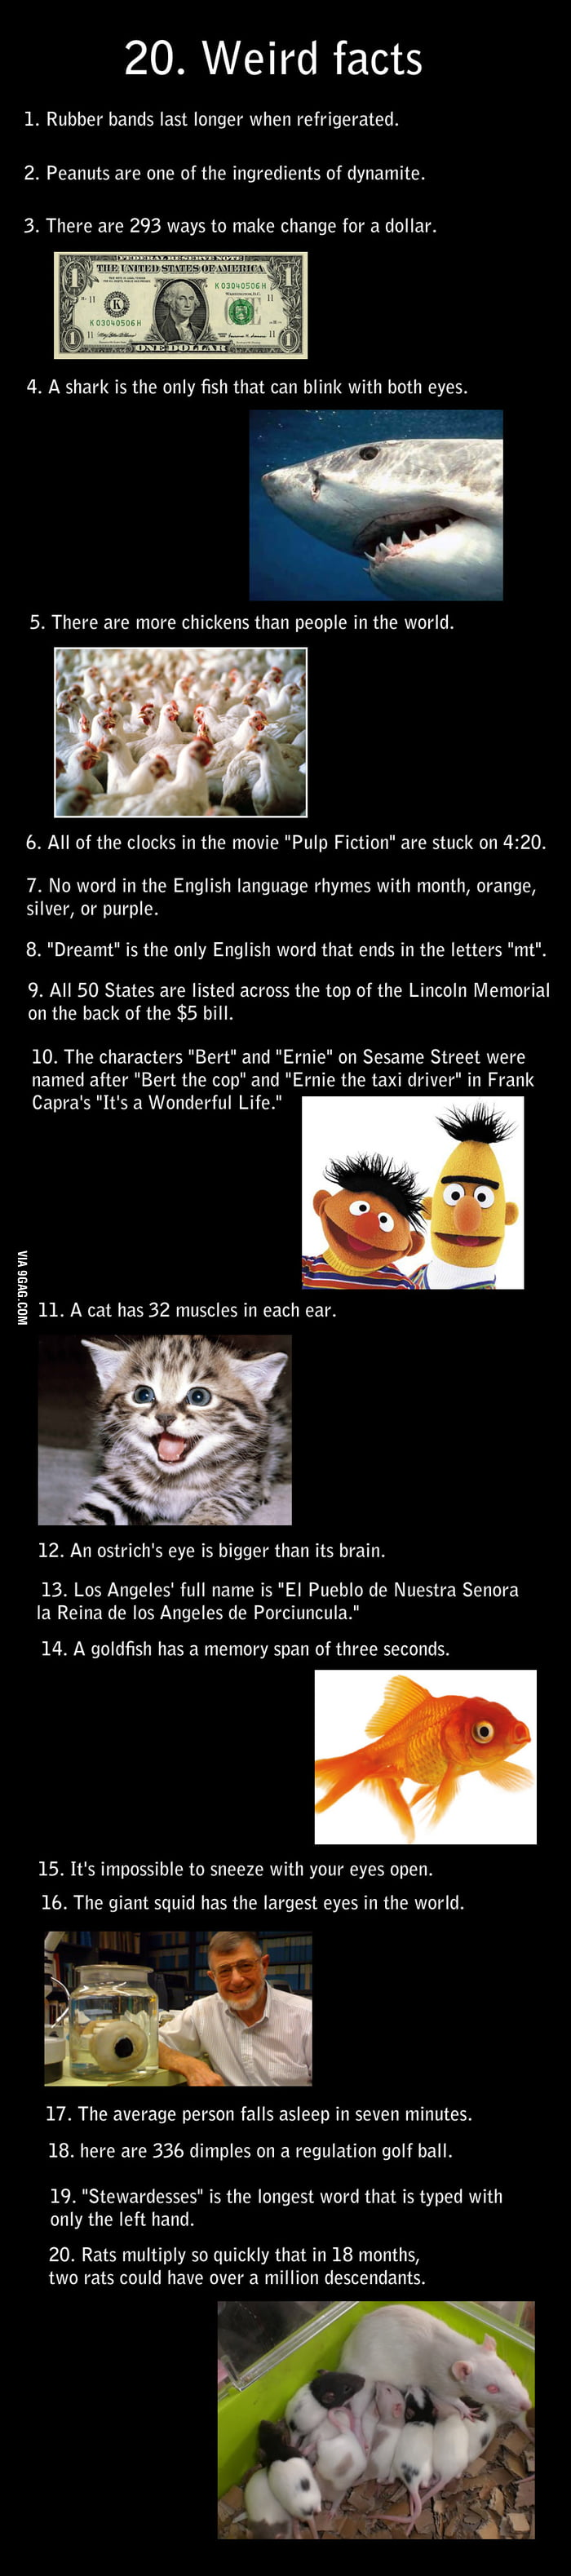 20 insane facts!